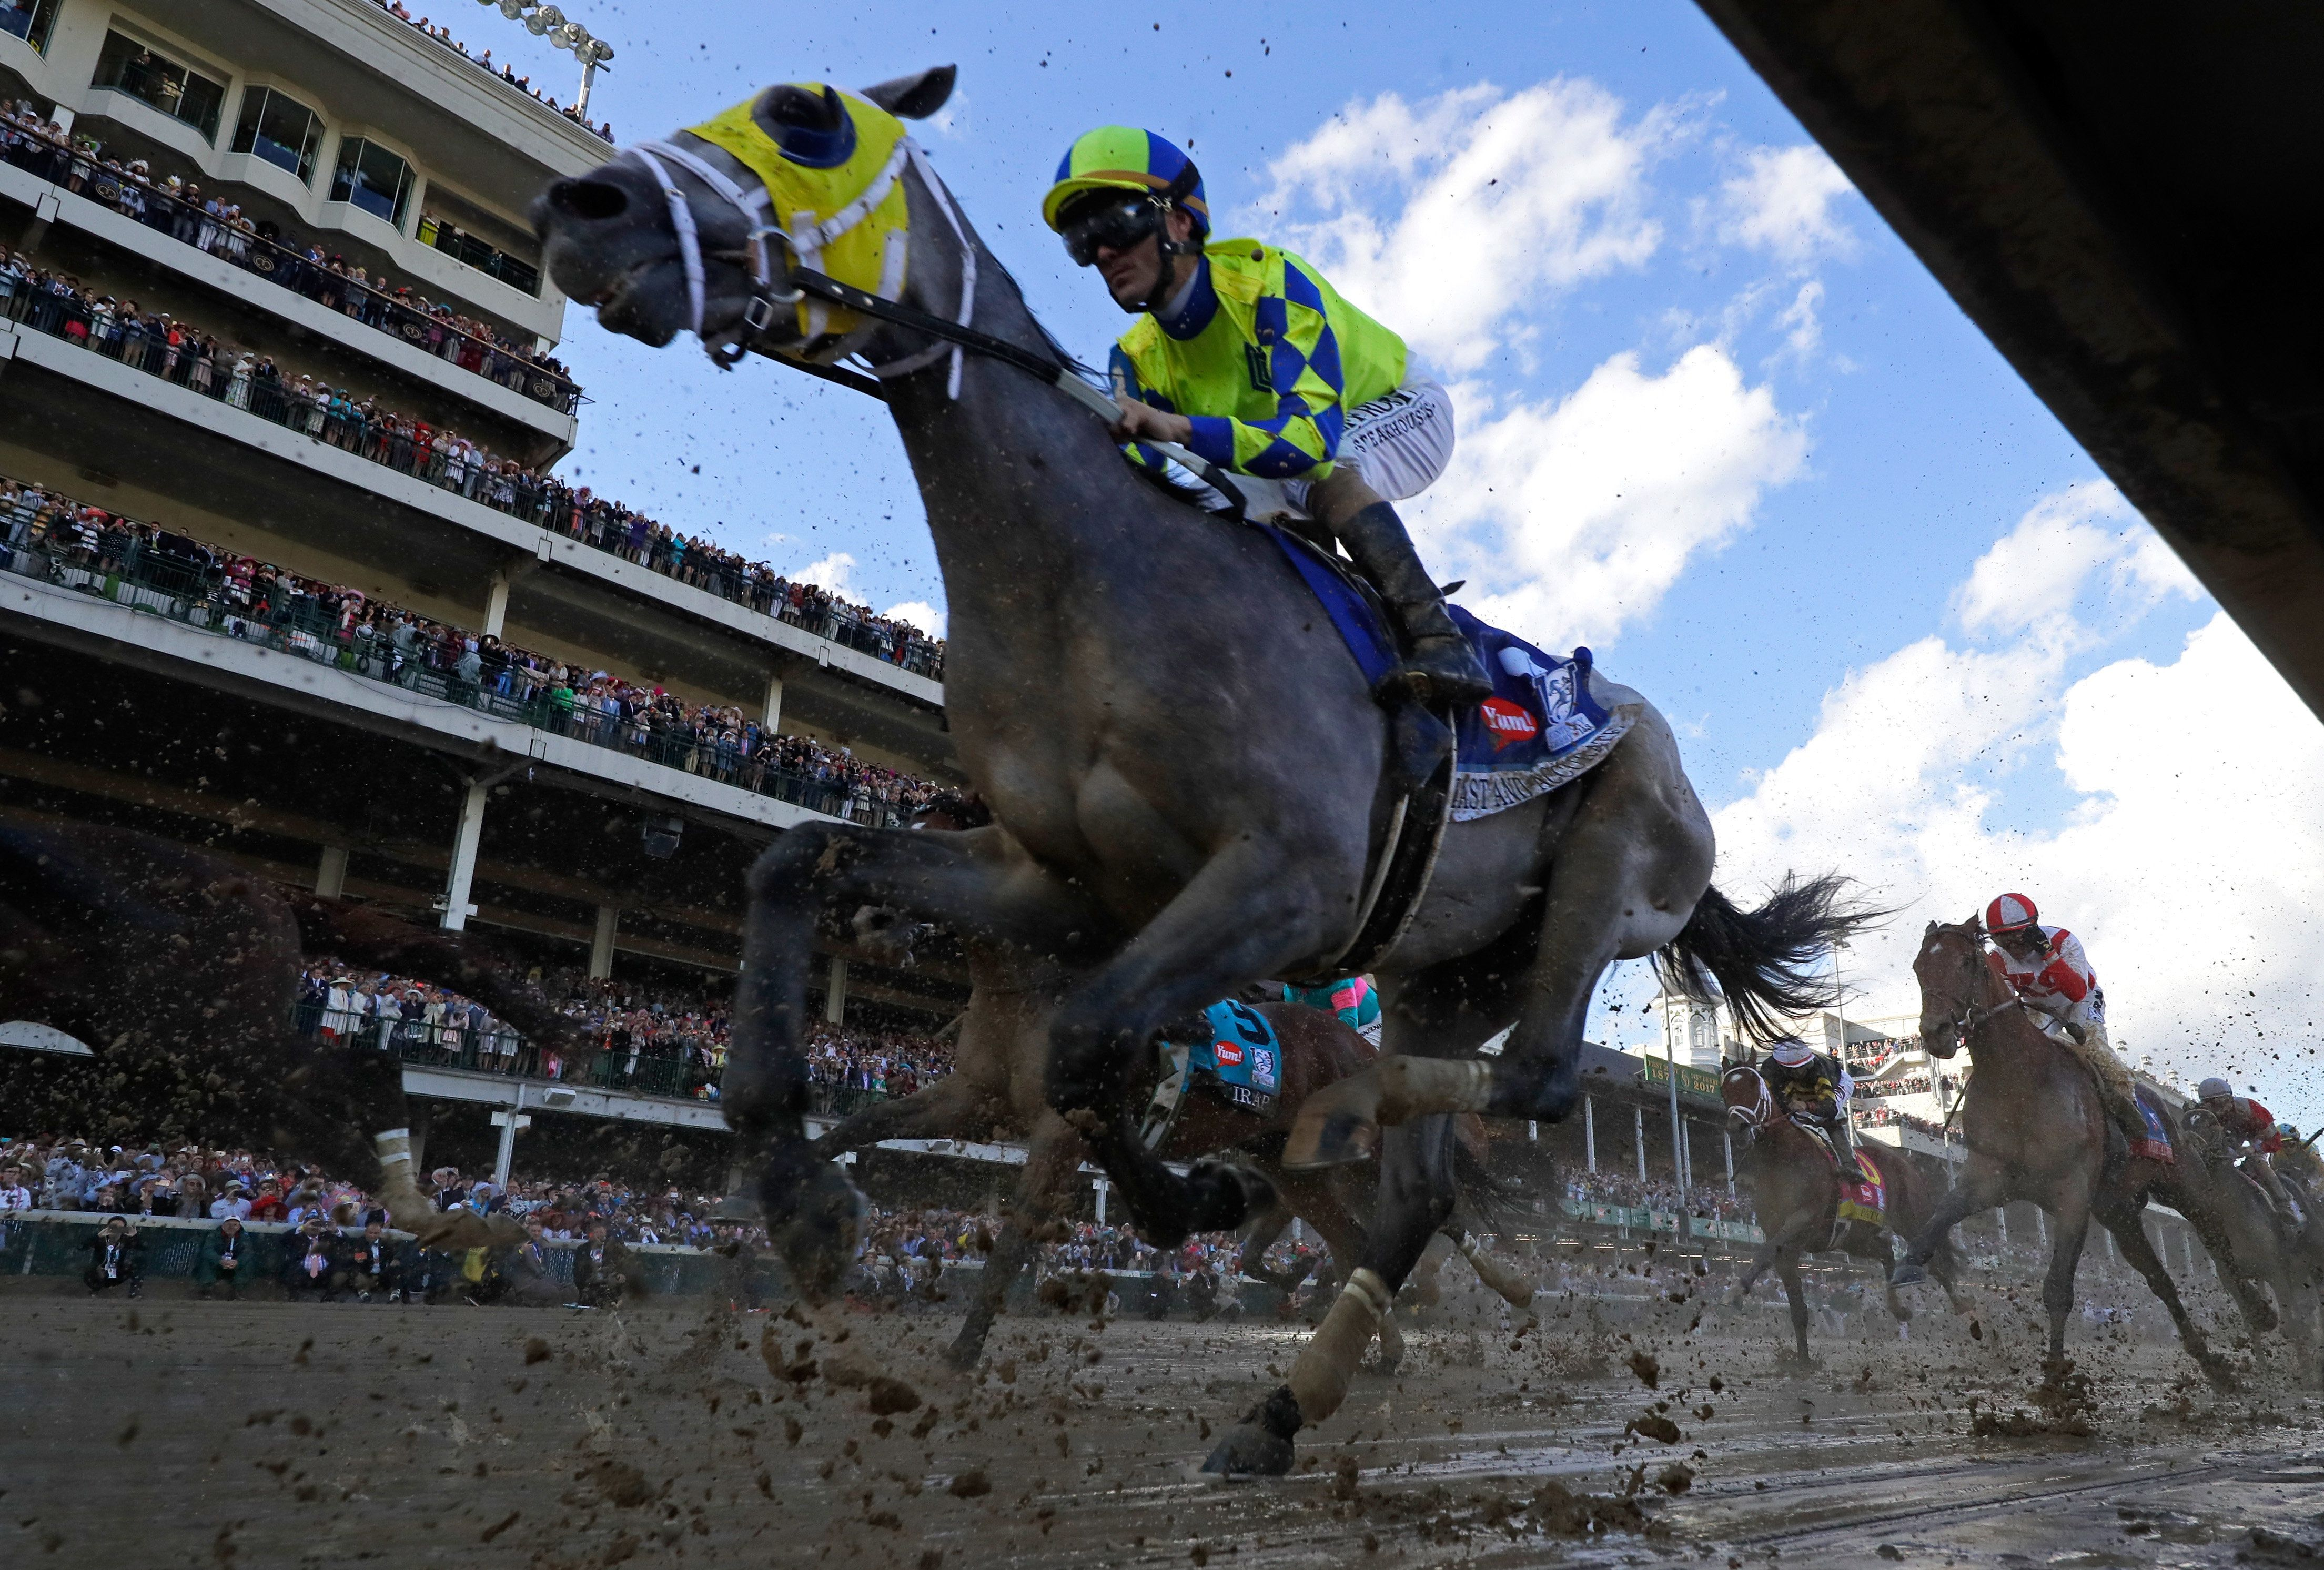 """In 2017, jockey John Velazquez won the Kentucky Derby with his horse Always Dreaming. Here's how the popular expression """"hands down"""" ties into all of this."""